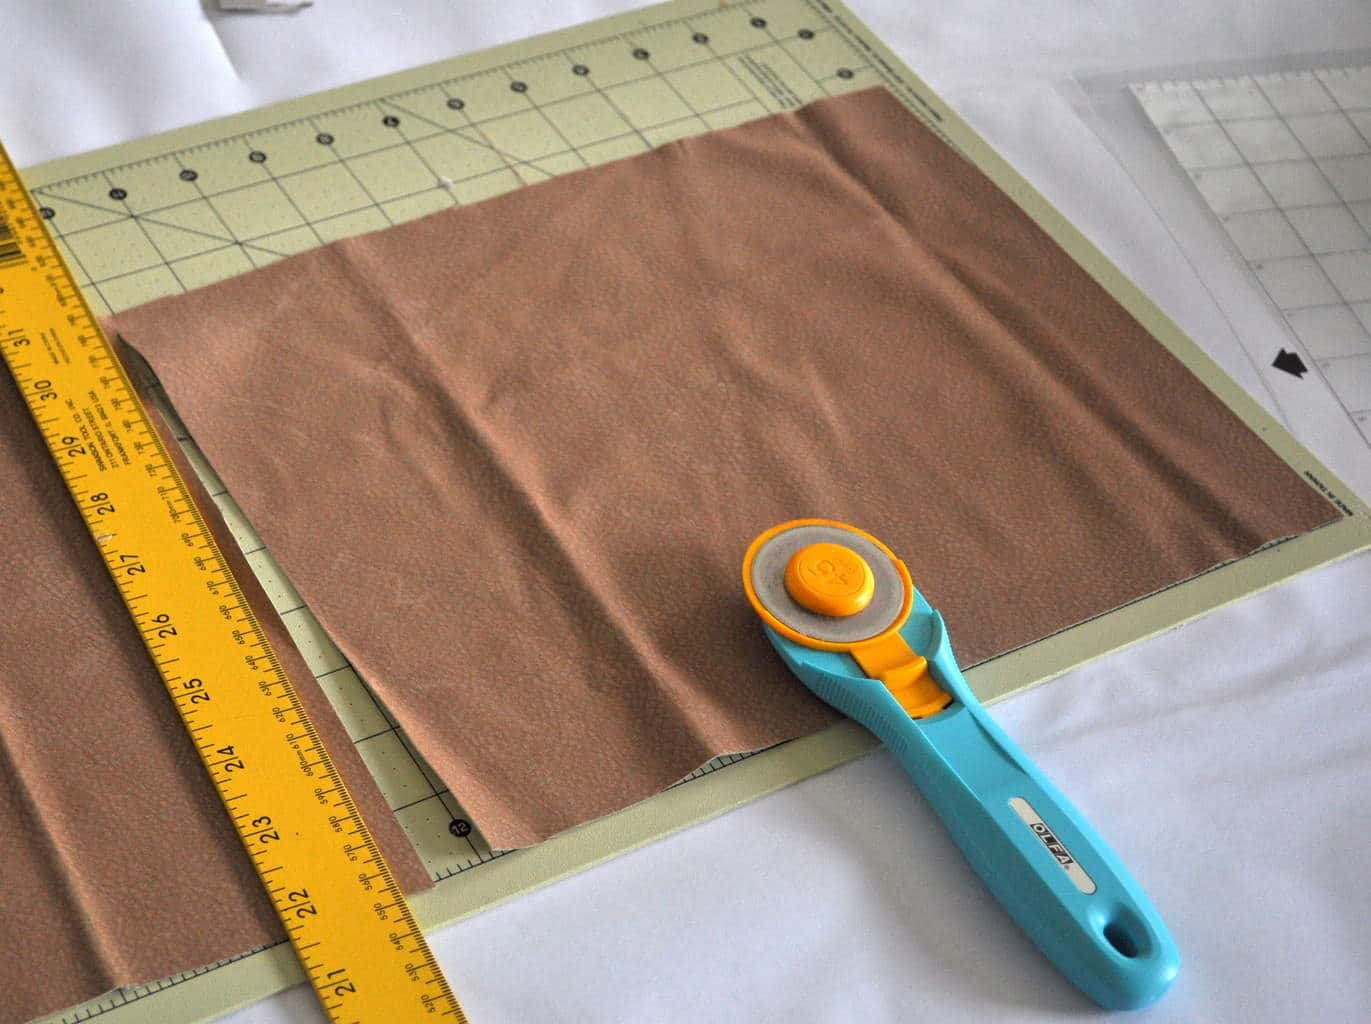 Trim fabric before cutting with silhouette madeinaday.com